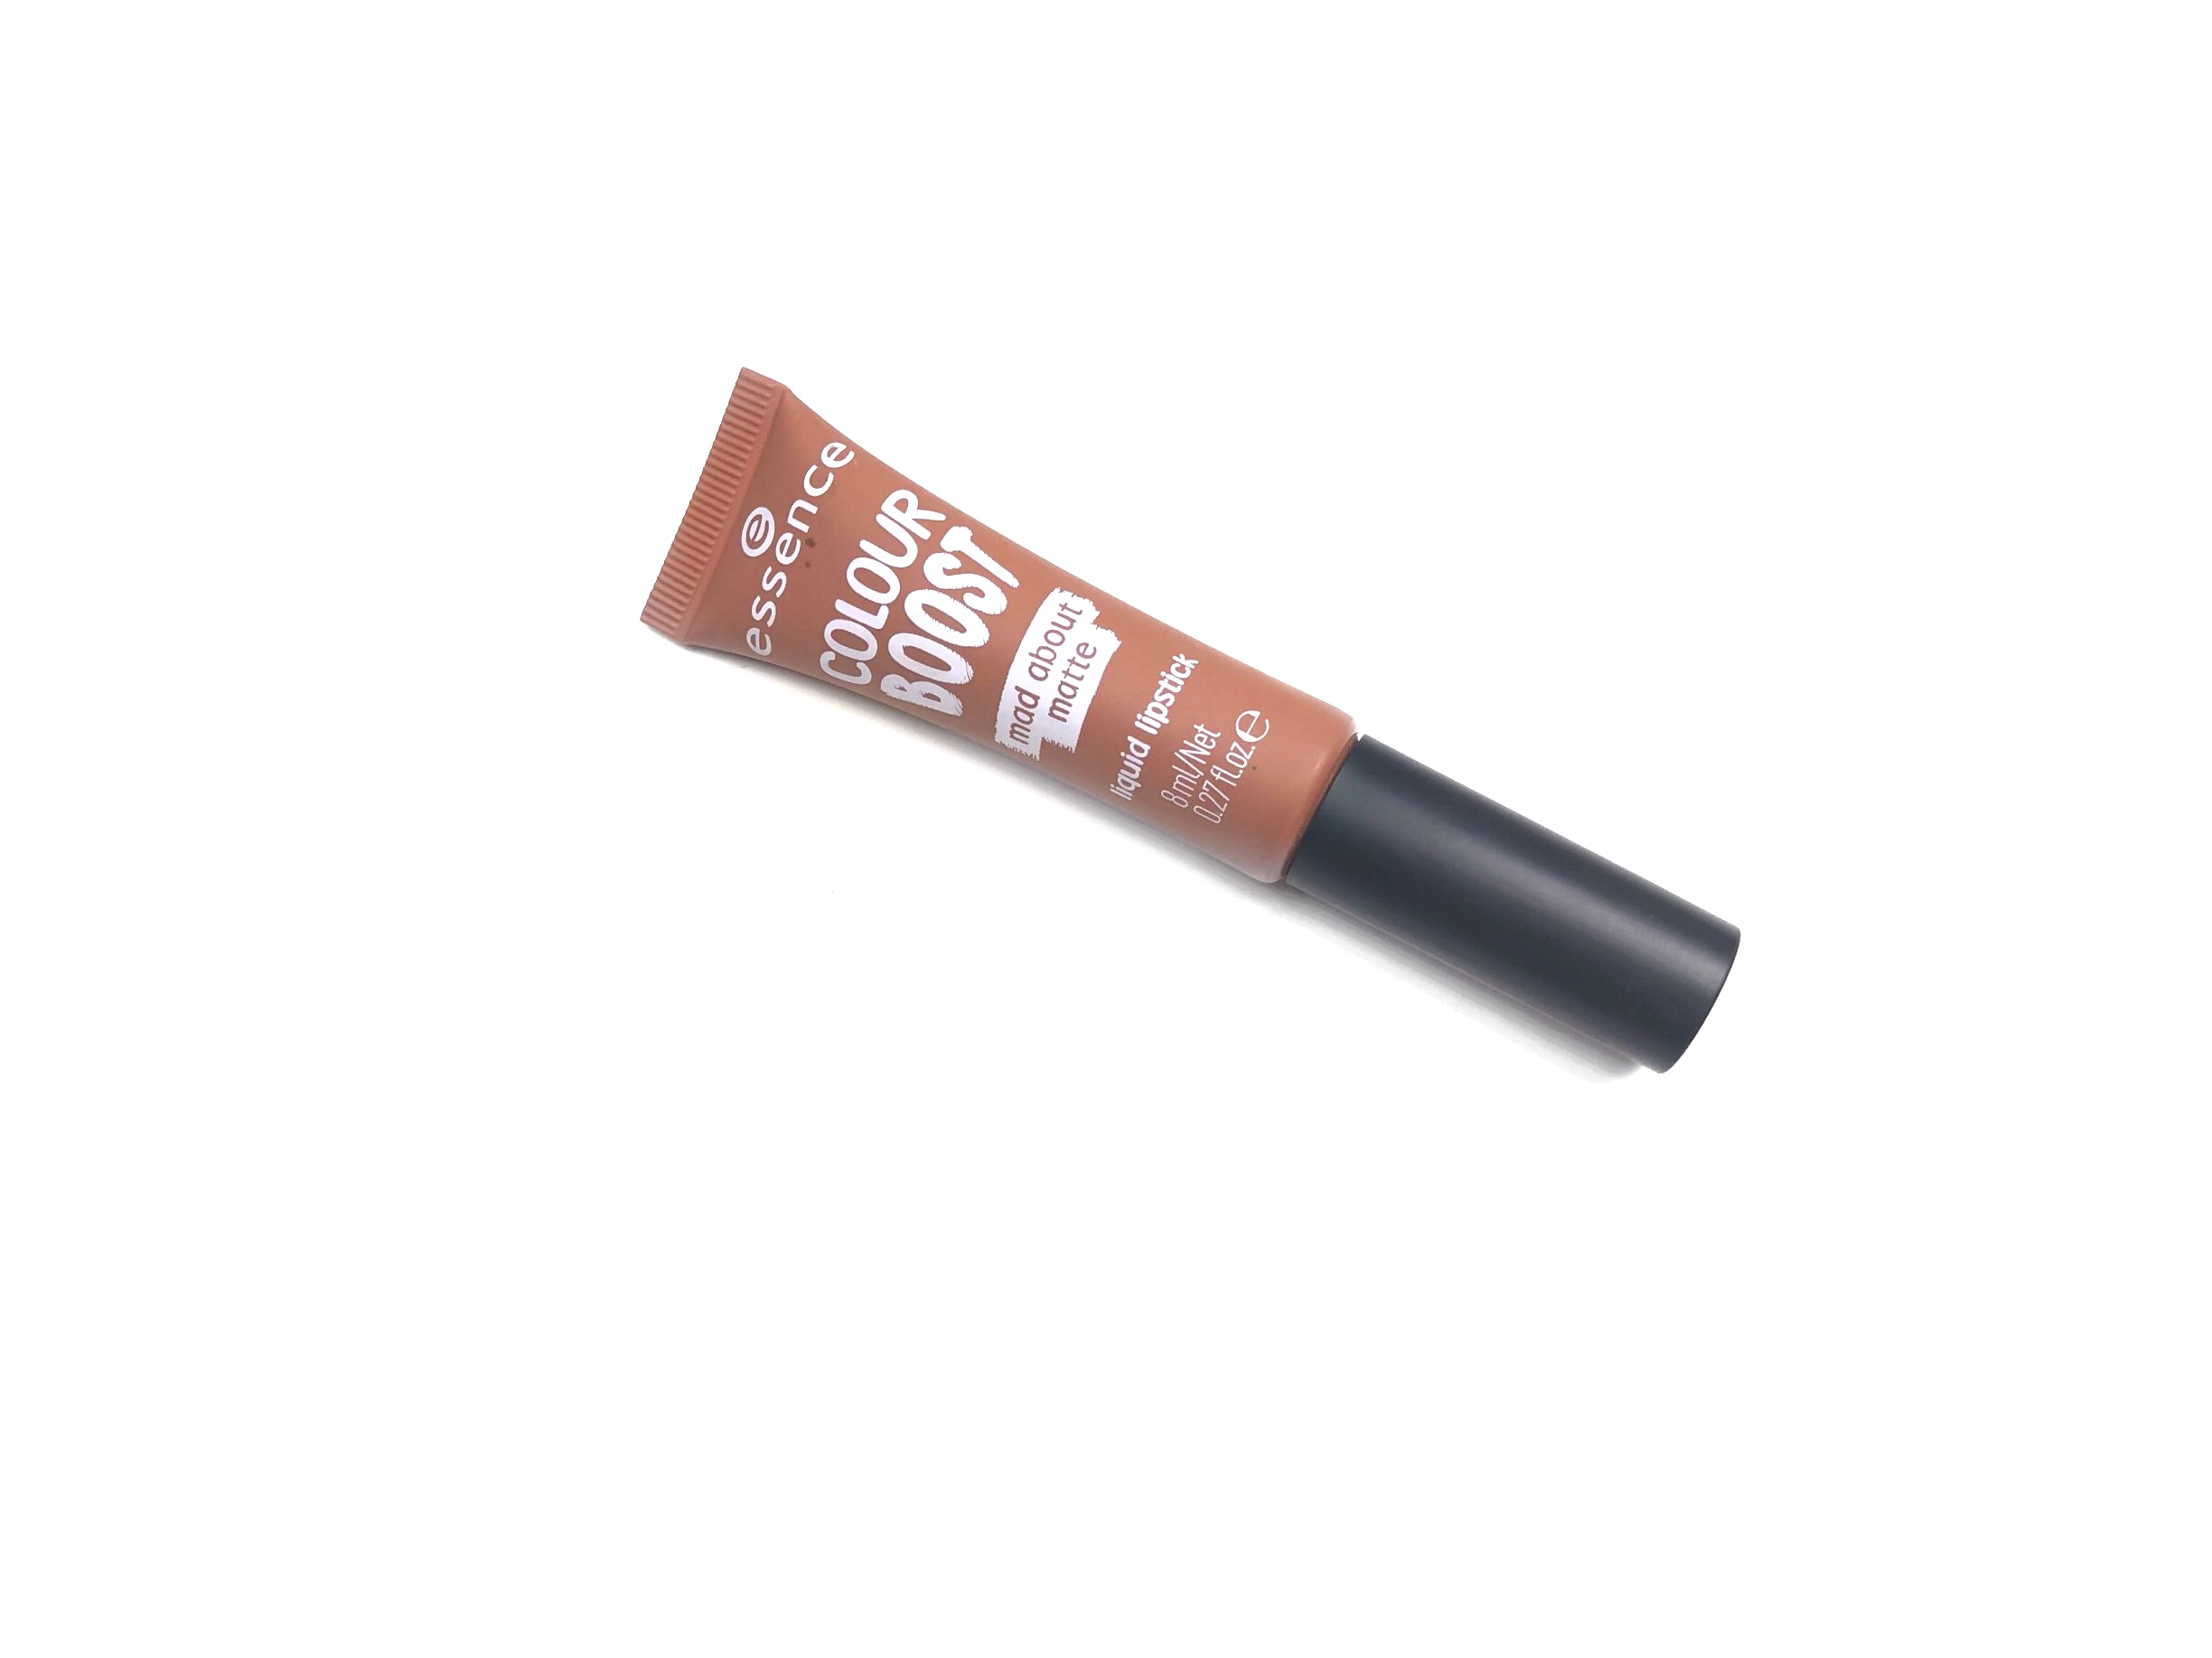 Essence Colour Boost Mad About Matte Liquid Lipstick 01 Dusty Romance 2